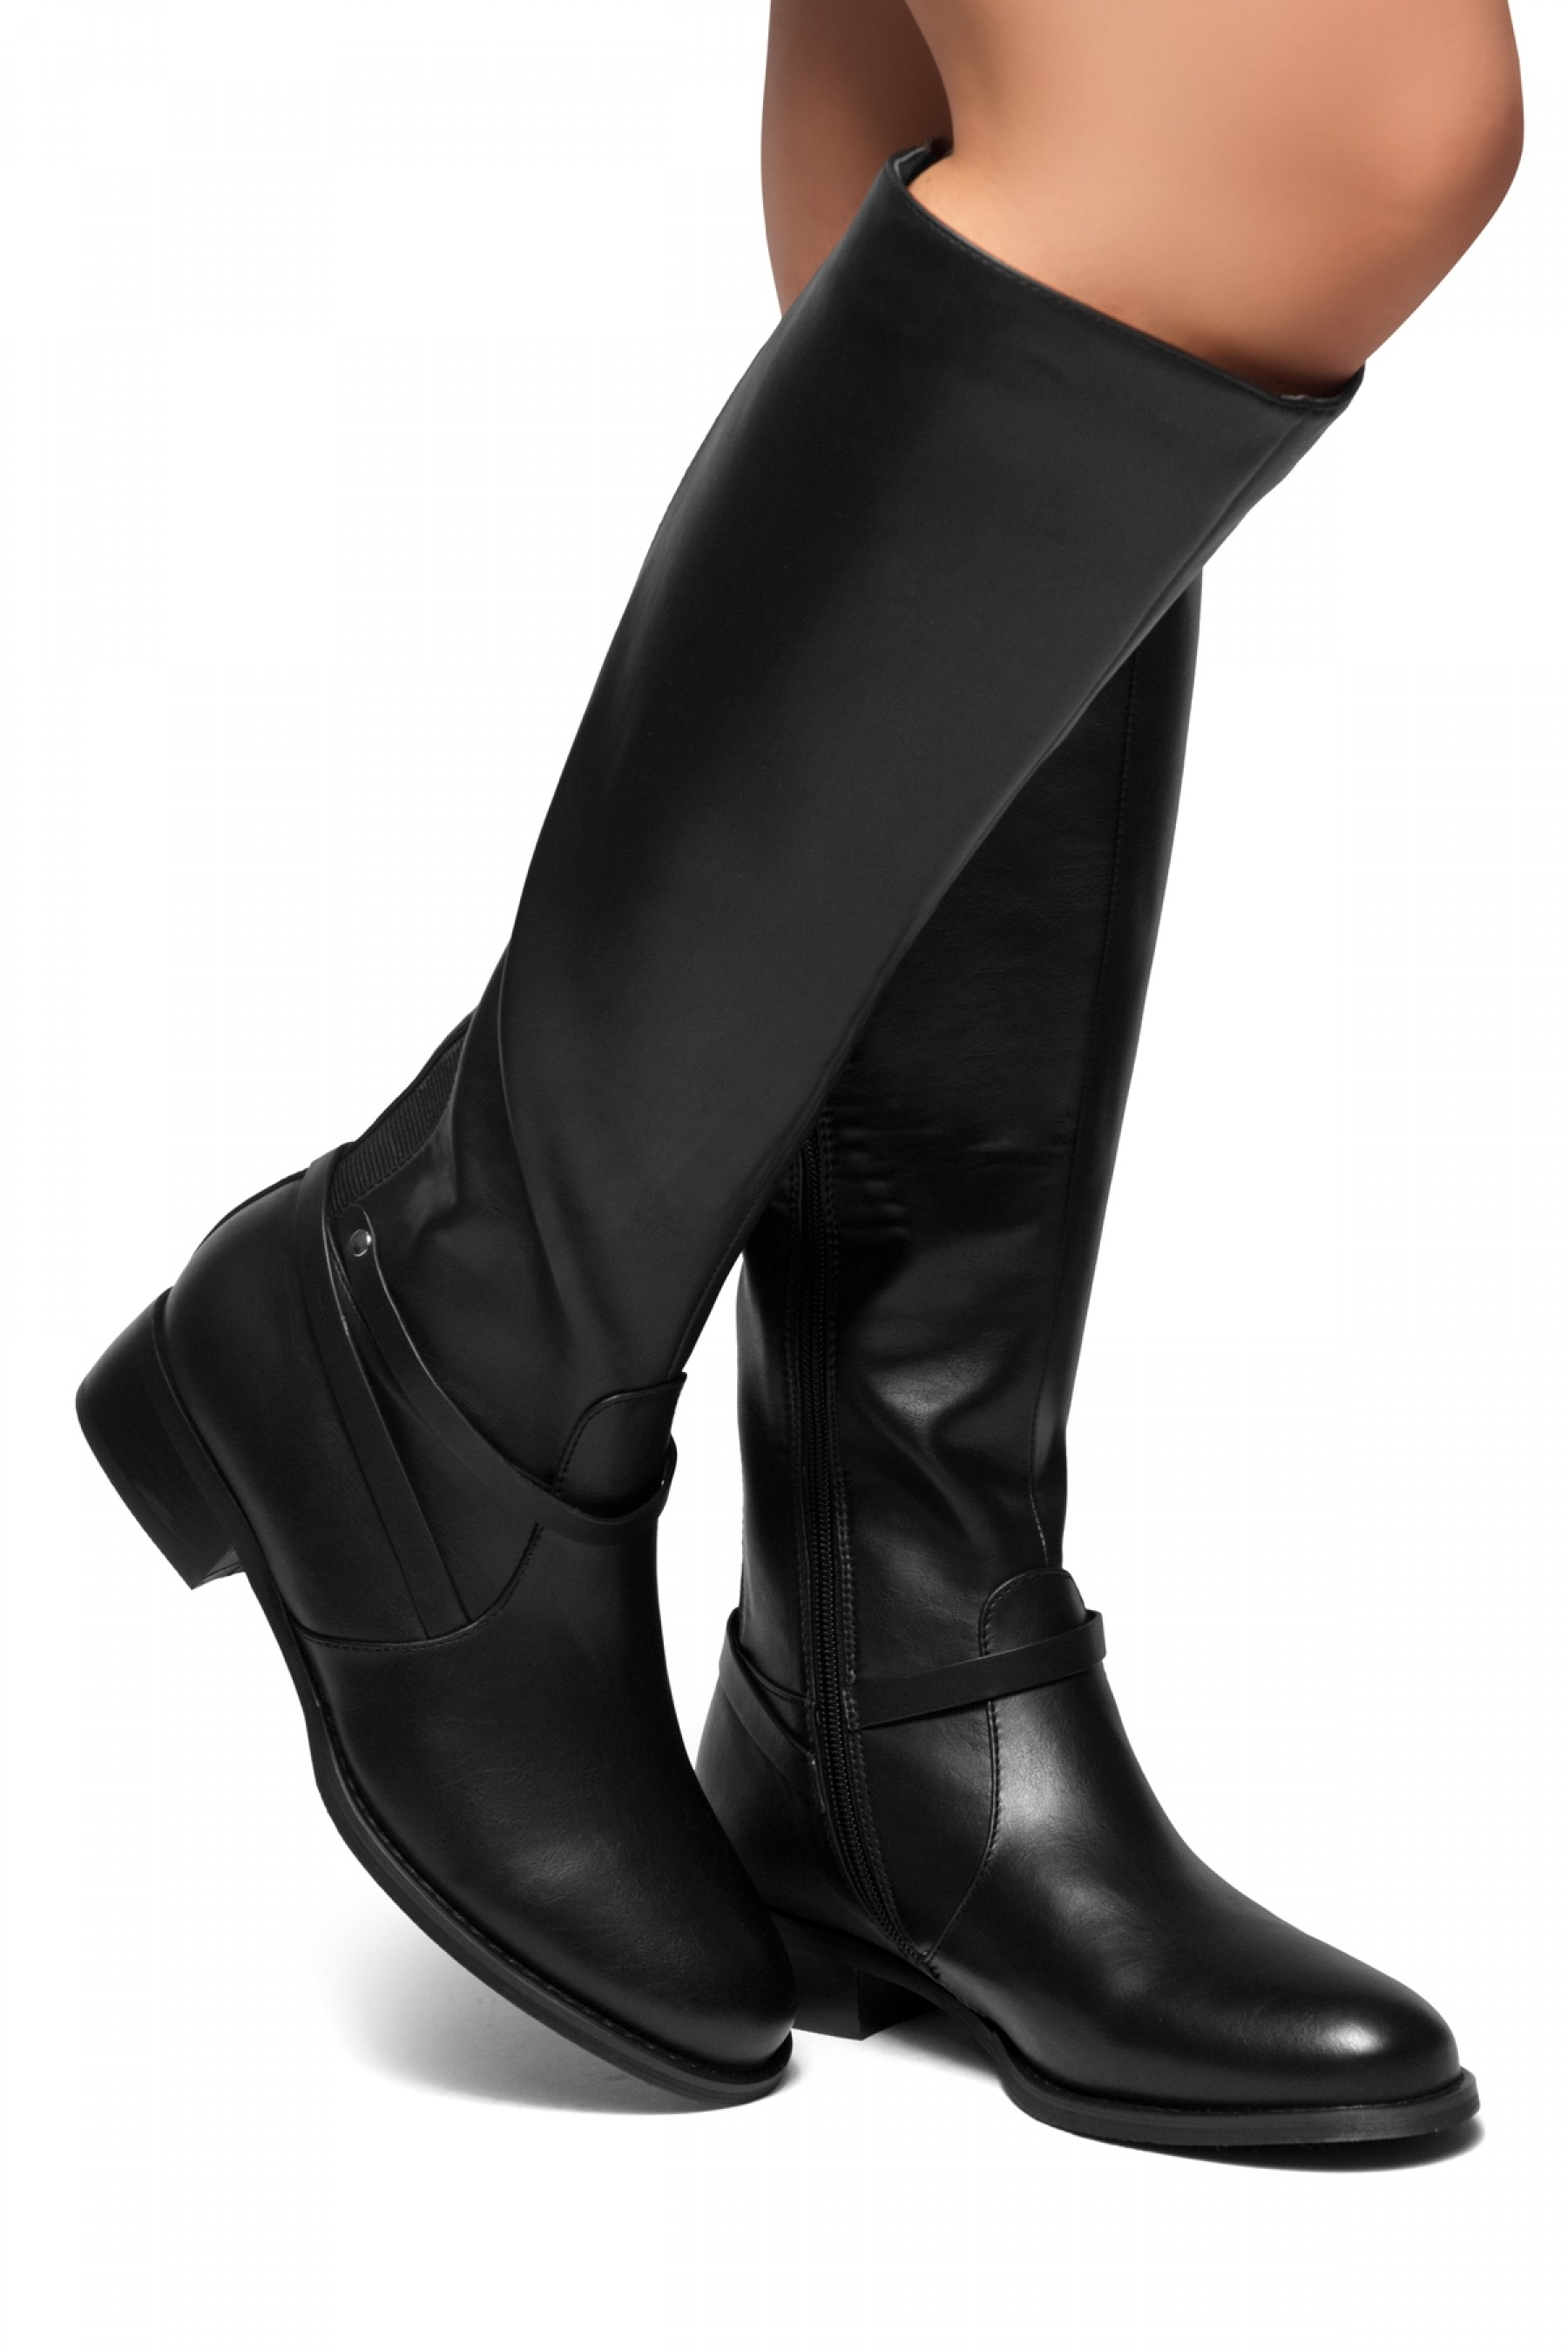 HerStyle RISKY OUTLAW-Elastane Back Panel Riding Boots (Black)